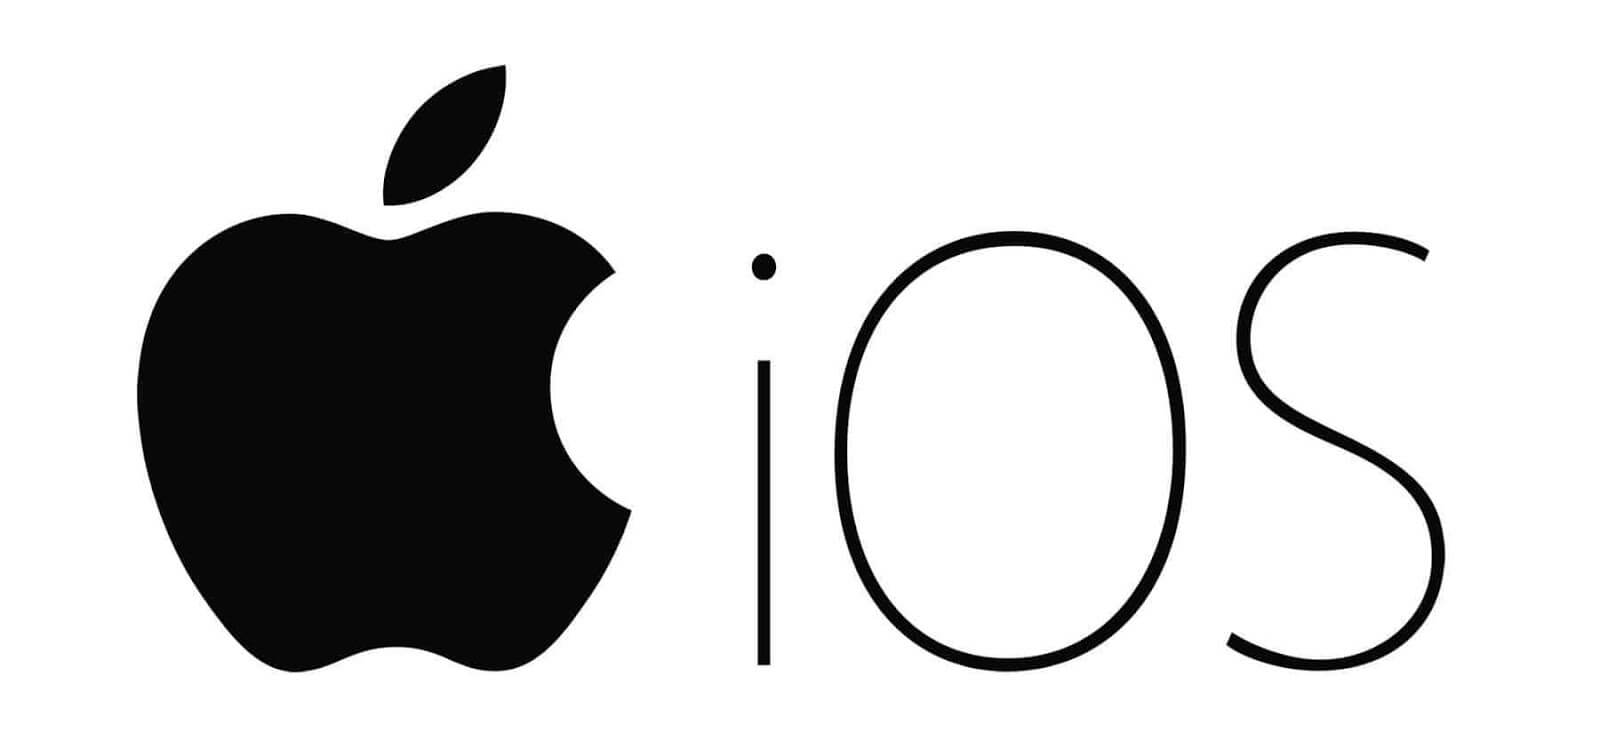 Apple's Upcoming iOS 14.5 – Highlights and Features